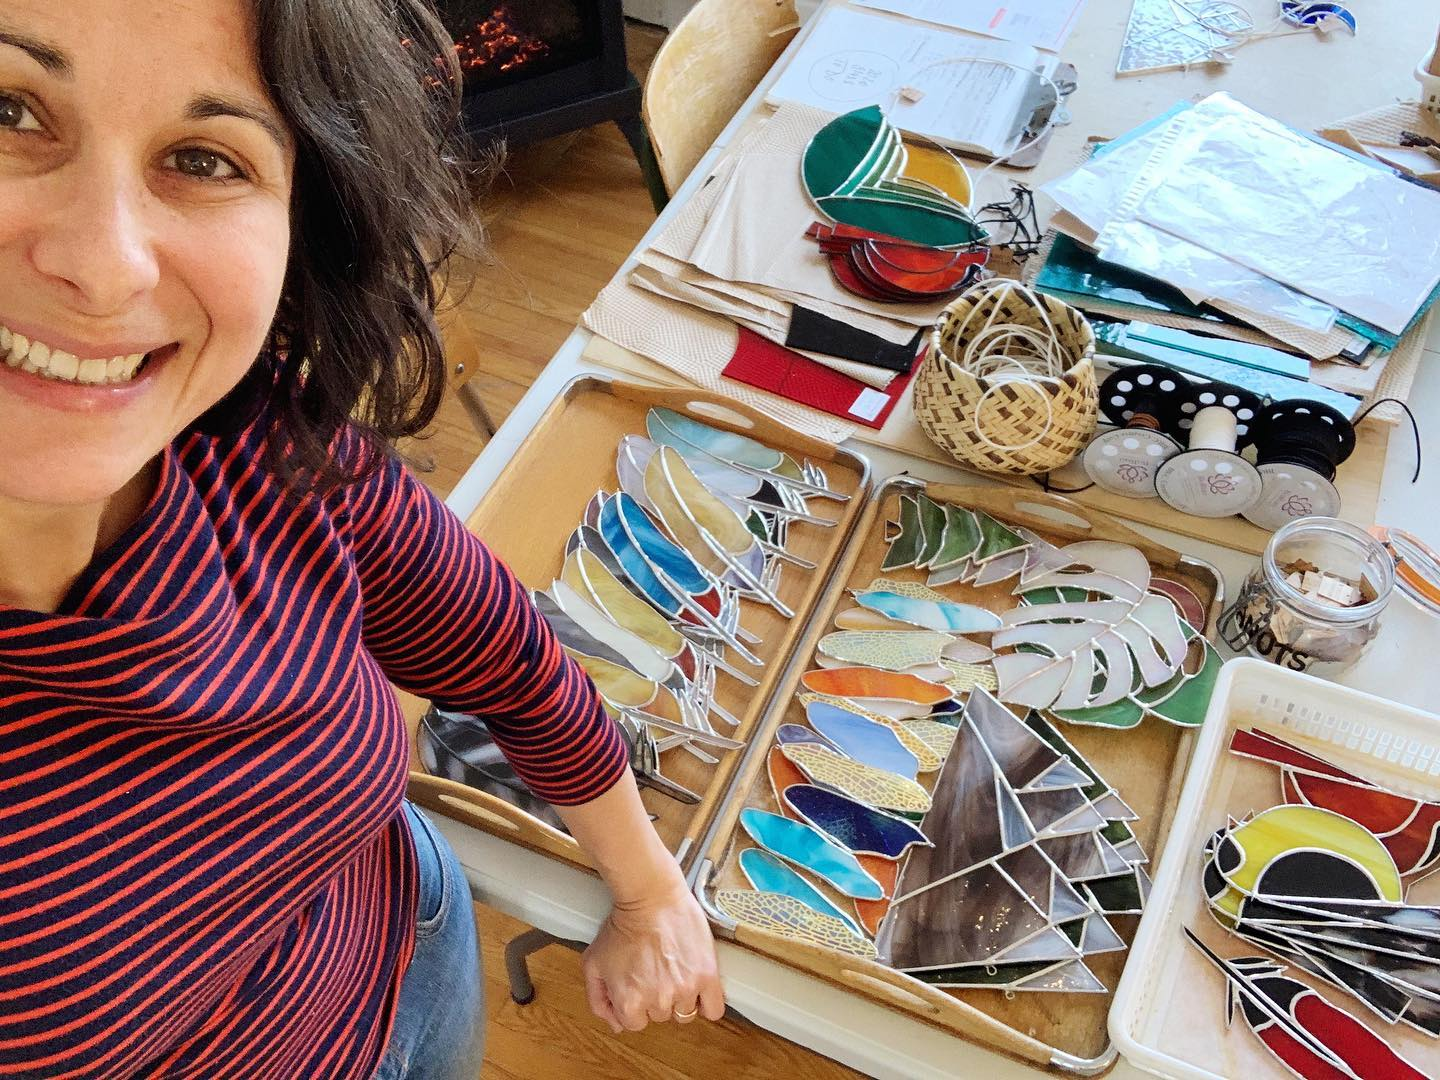 A woman poses a for a selfie smiling with stained glass pieces next to her.